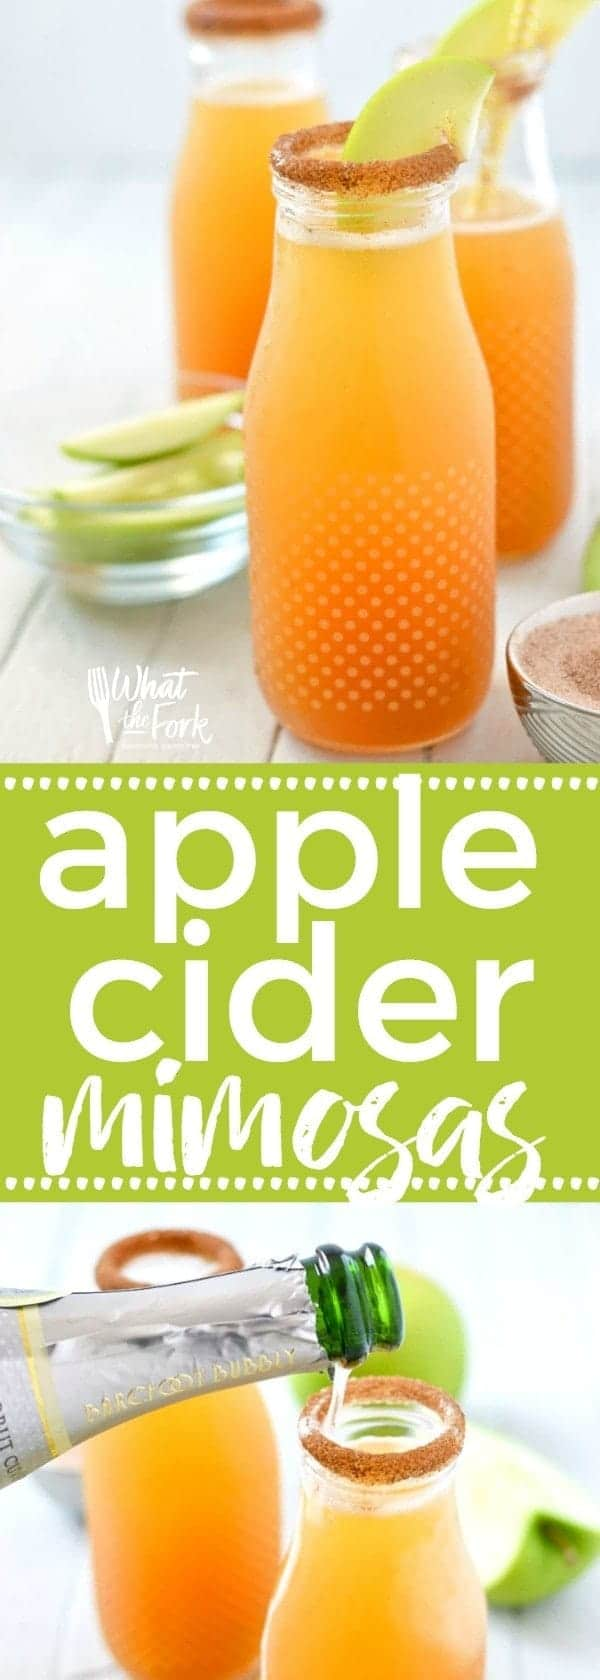 Apple Cider Mimosas are the perfect fall twist on a classic drink. These are great for brunch or any occasion that calls for champagne! Easy fall drink recipe from @whattheforkblog | whattheforkfoodblog | apple cider champagne cocktail | drinks with apple cider | fall cocktails | apple cider cocktails | drinks for brunch | champagne cocktails | how to make a mimosa | spiced apple cider mimosa | apple cider mimosa recipe | fall mimosa recipes | sparkling apple cider mimosas | apple cider mimosa video